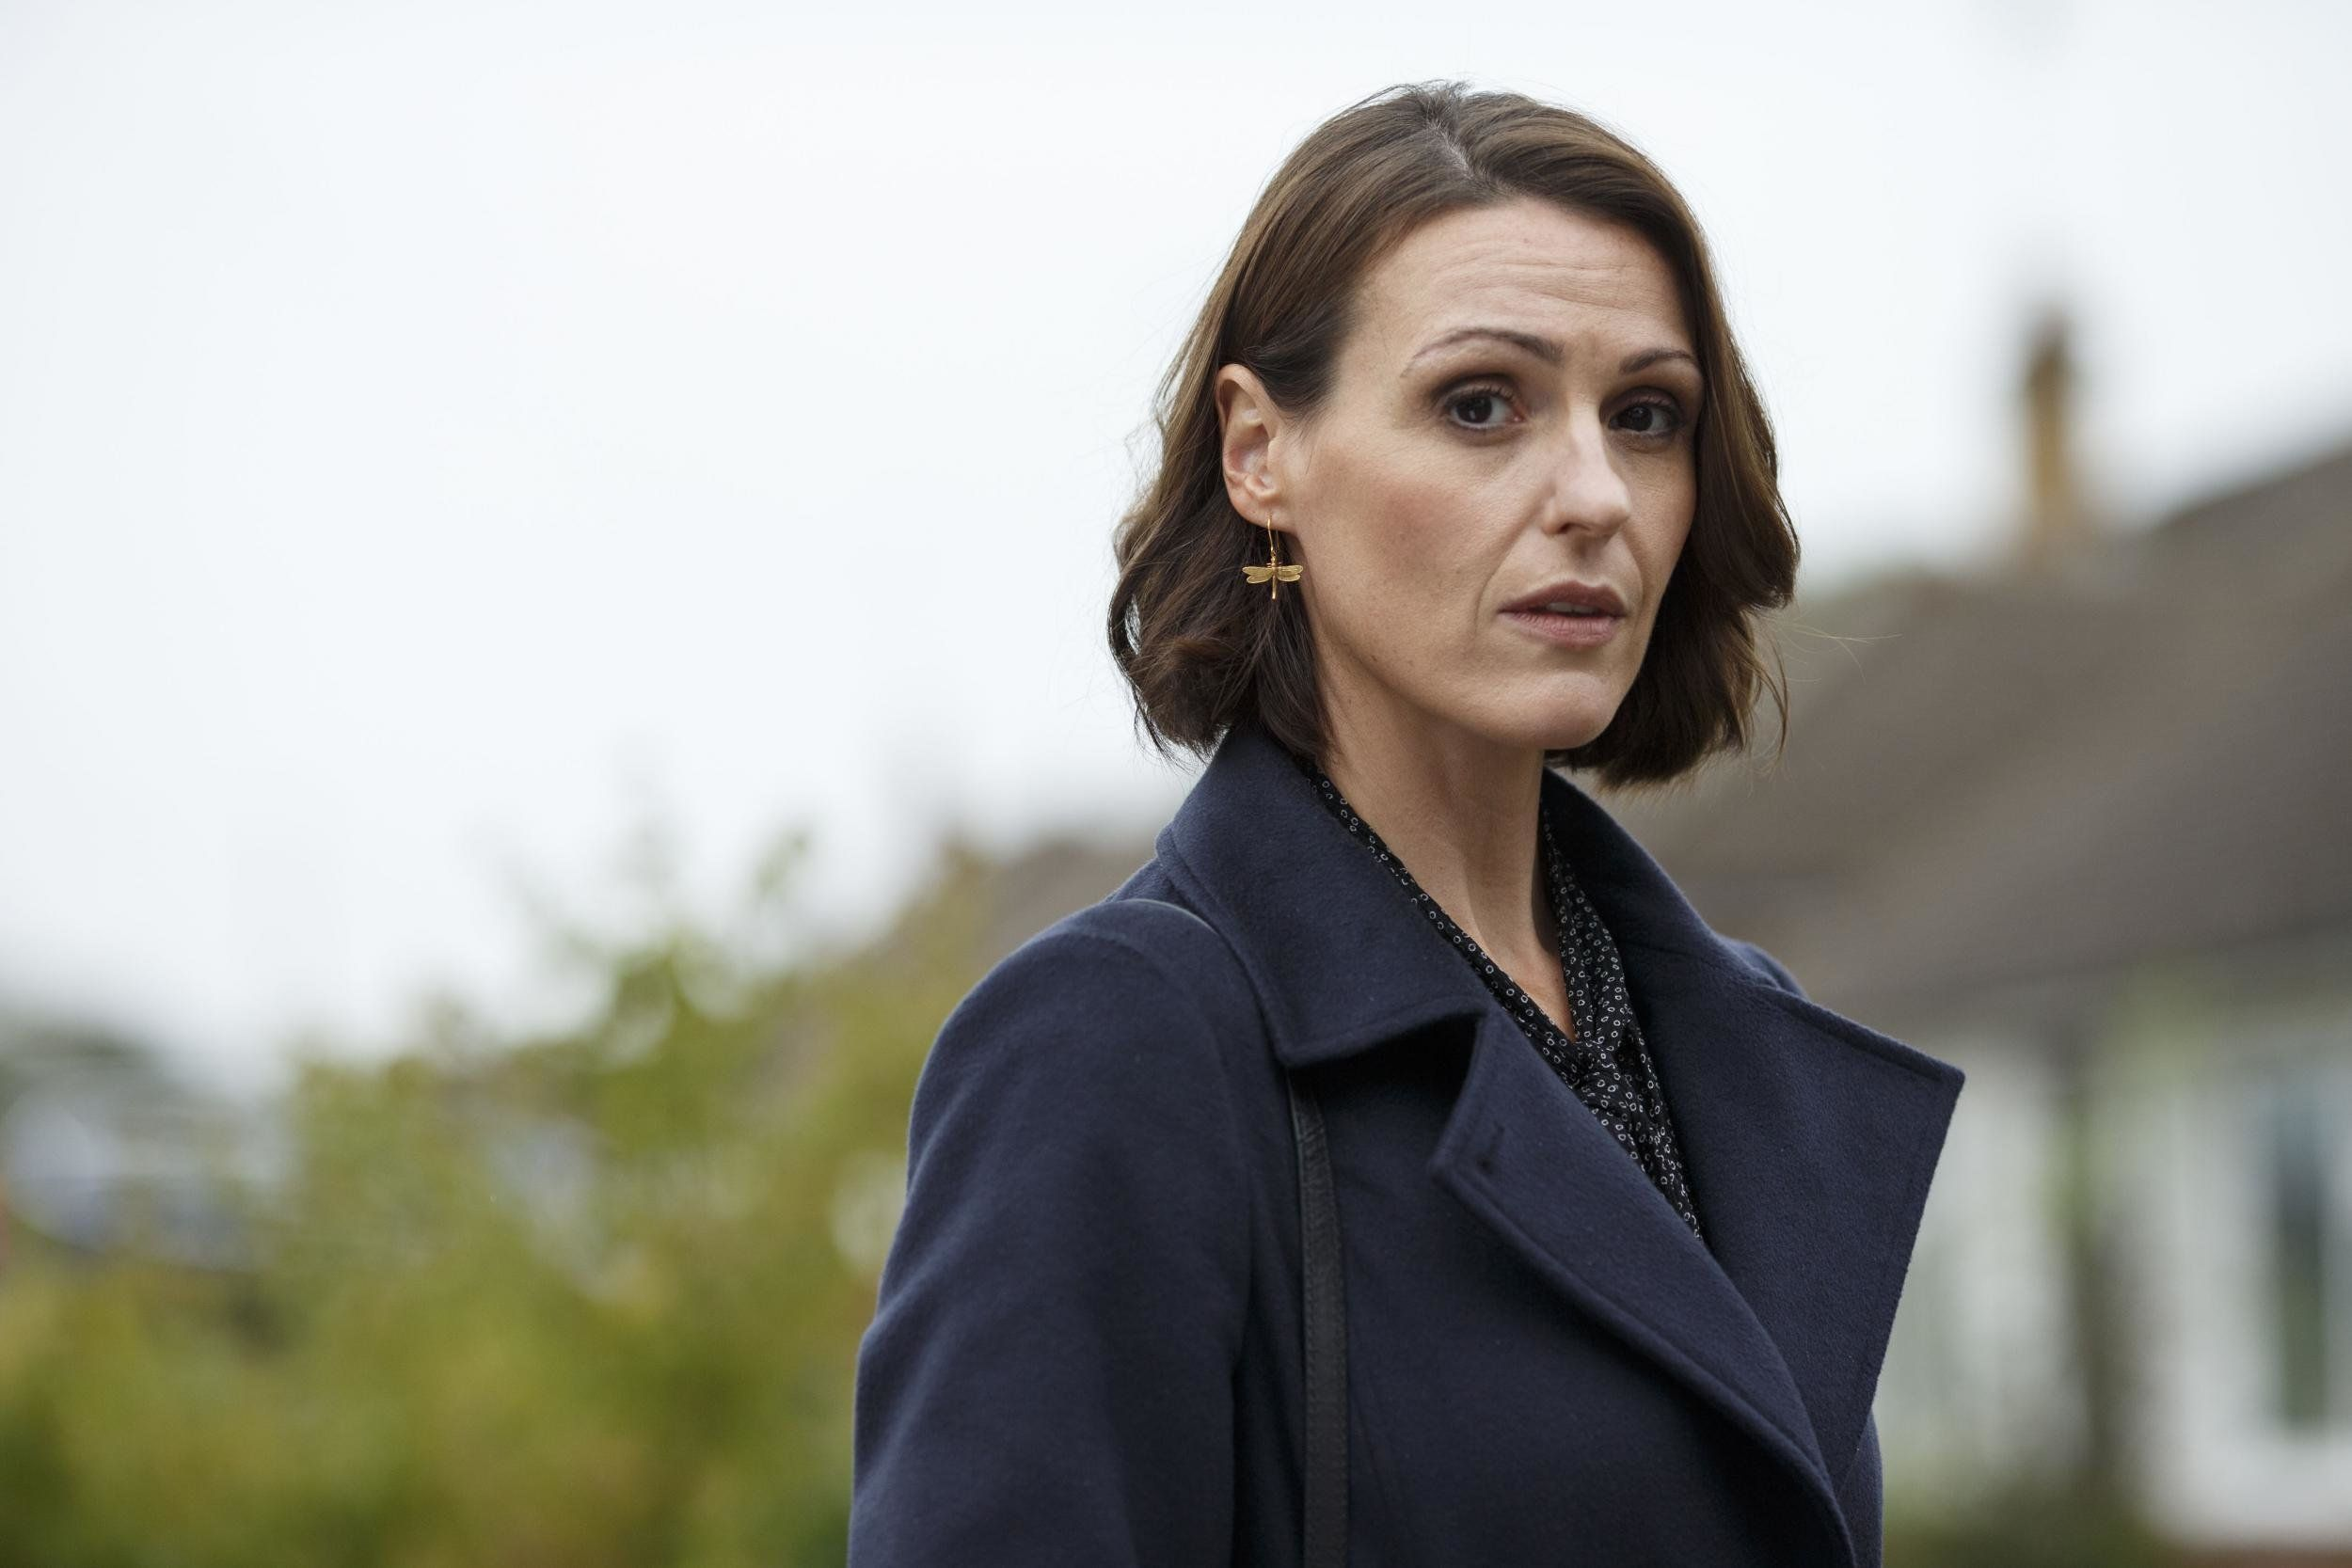 'Doctor Foster' Creator Mike Bartlett Hints Third Series Could Be On The Way (And What To